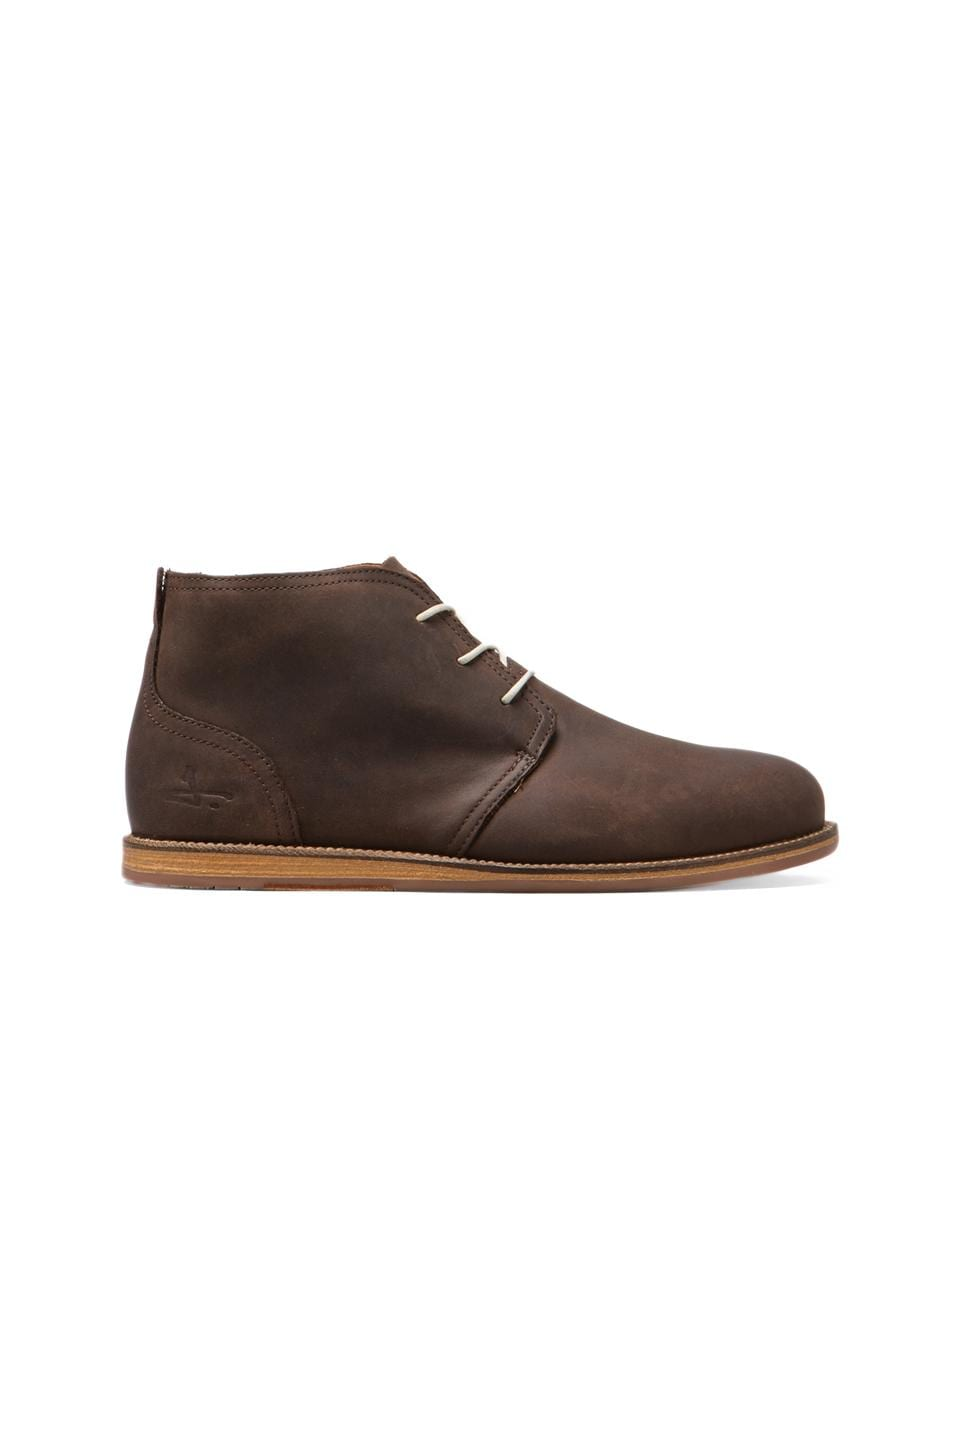 J SHOES Realm in Dark Brown